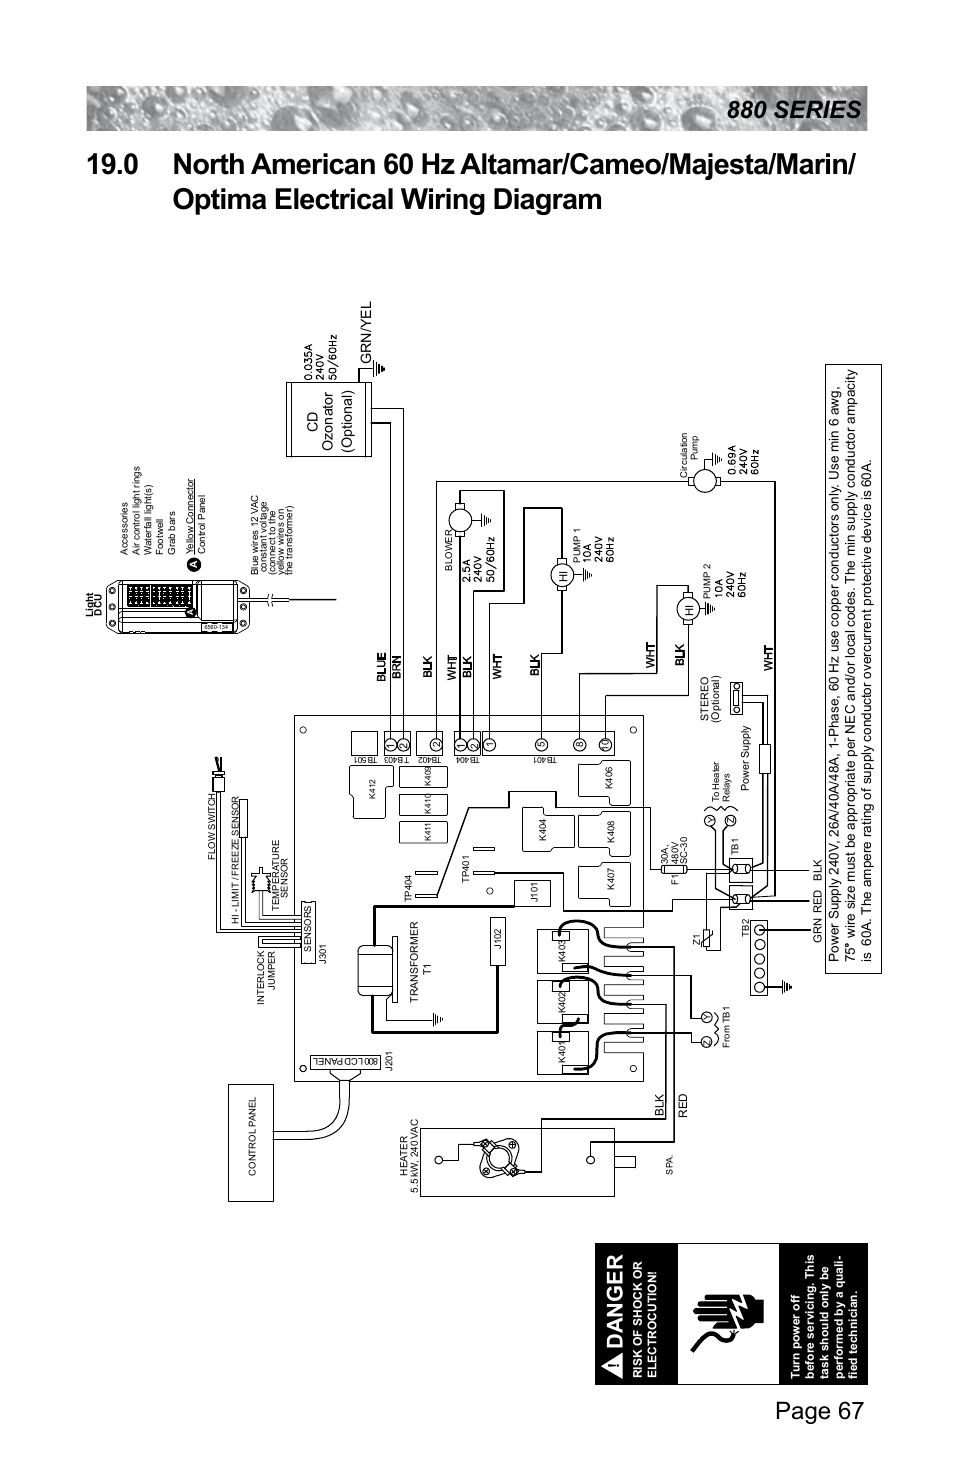 sundance spas altamar 880 page73 sundance spa wiring diagram spa pump wiring diagram \u2022 wiring spa builders lx 10 wiring diagram at mifinder.co